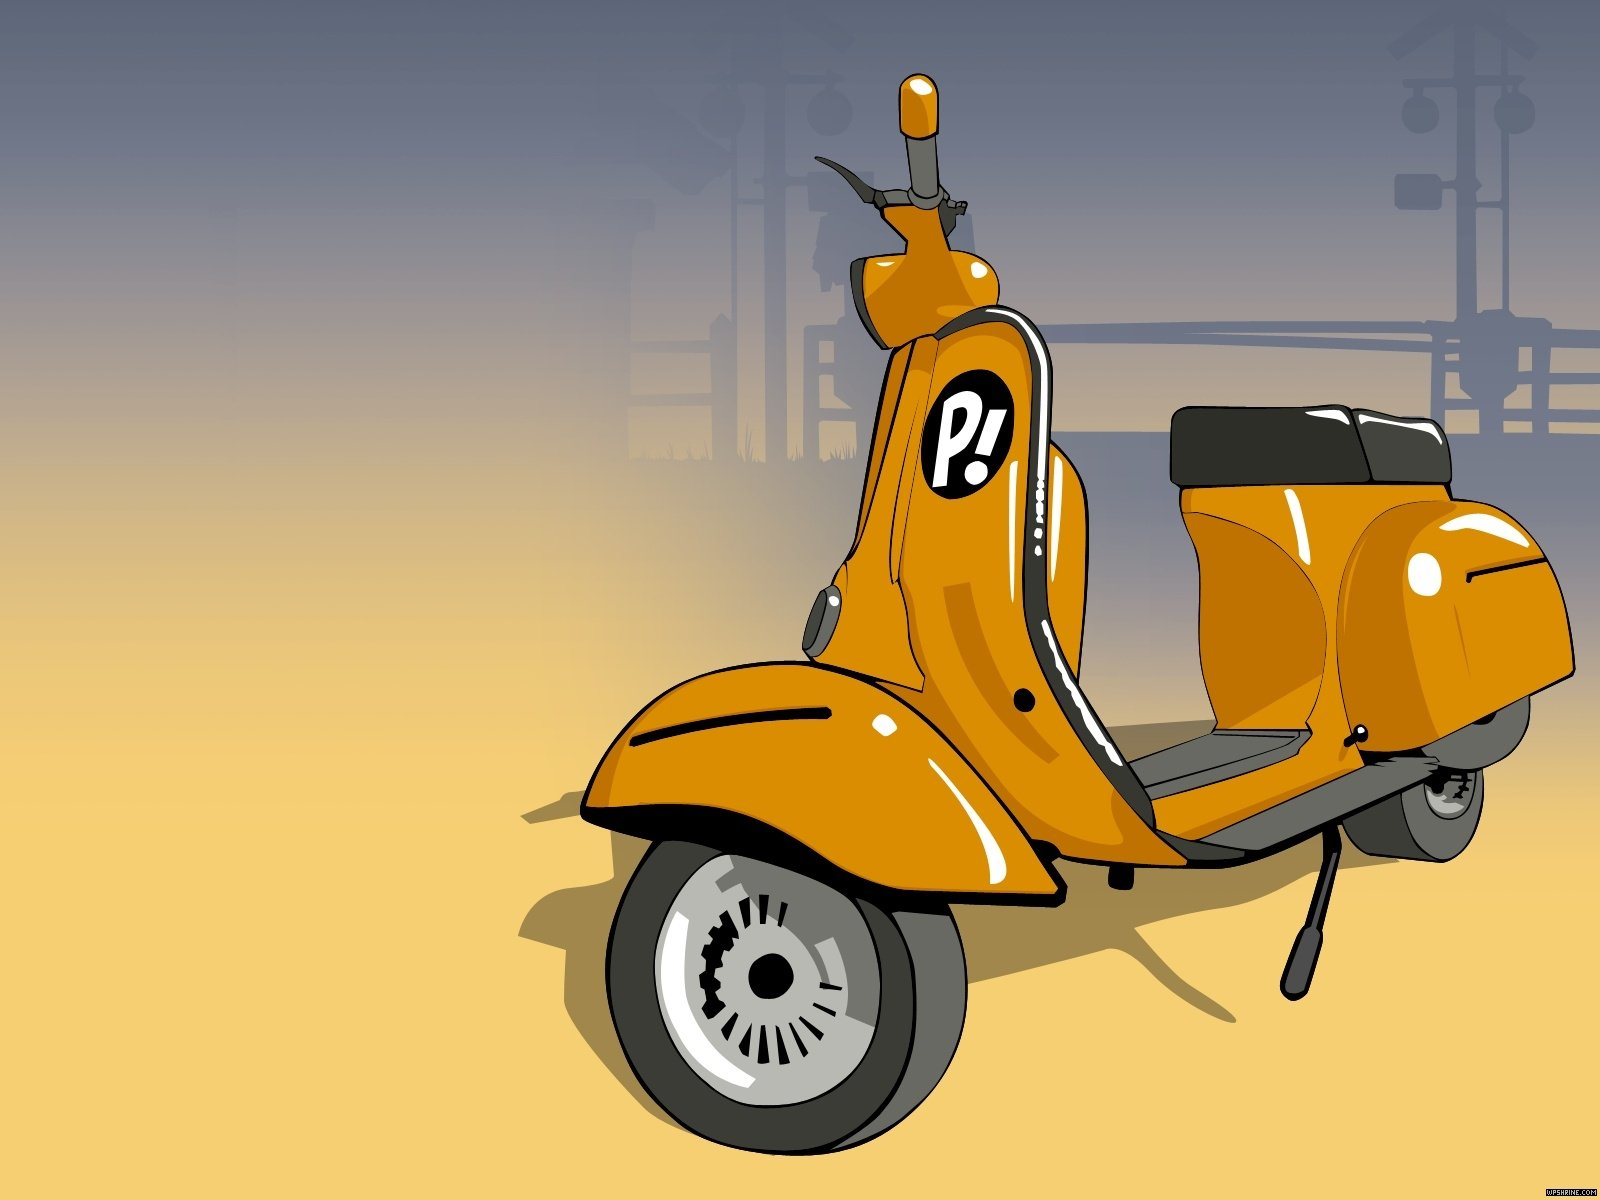 8 vespa hd wallpapers background images wallpaper abyss